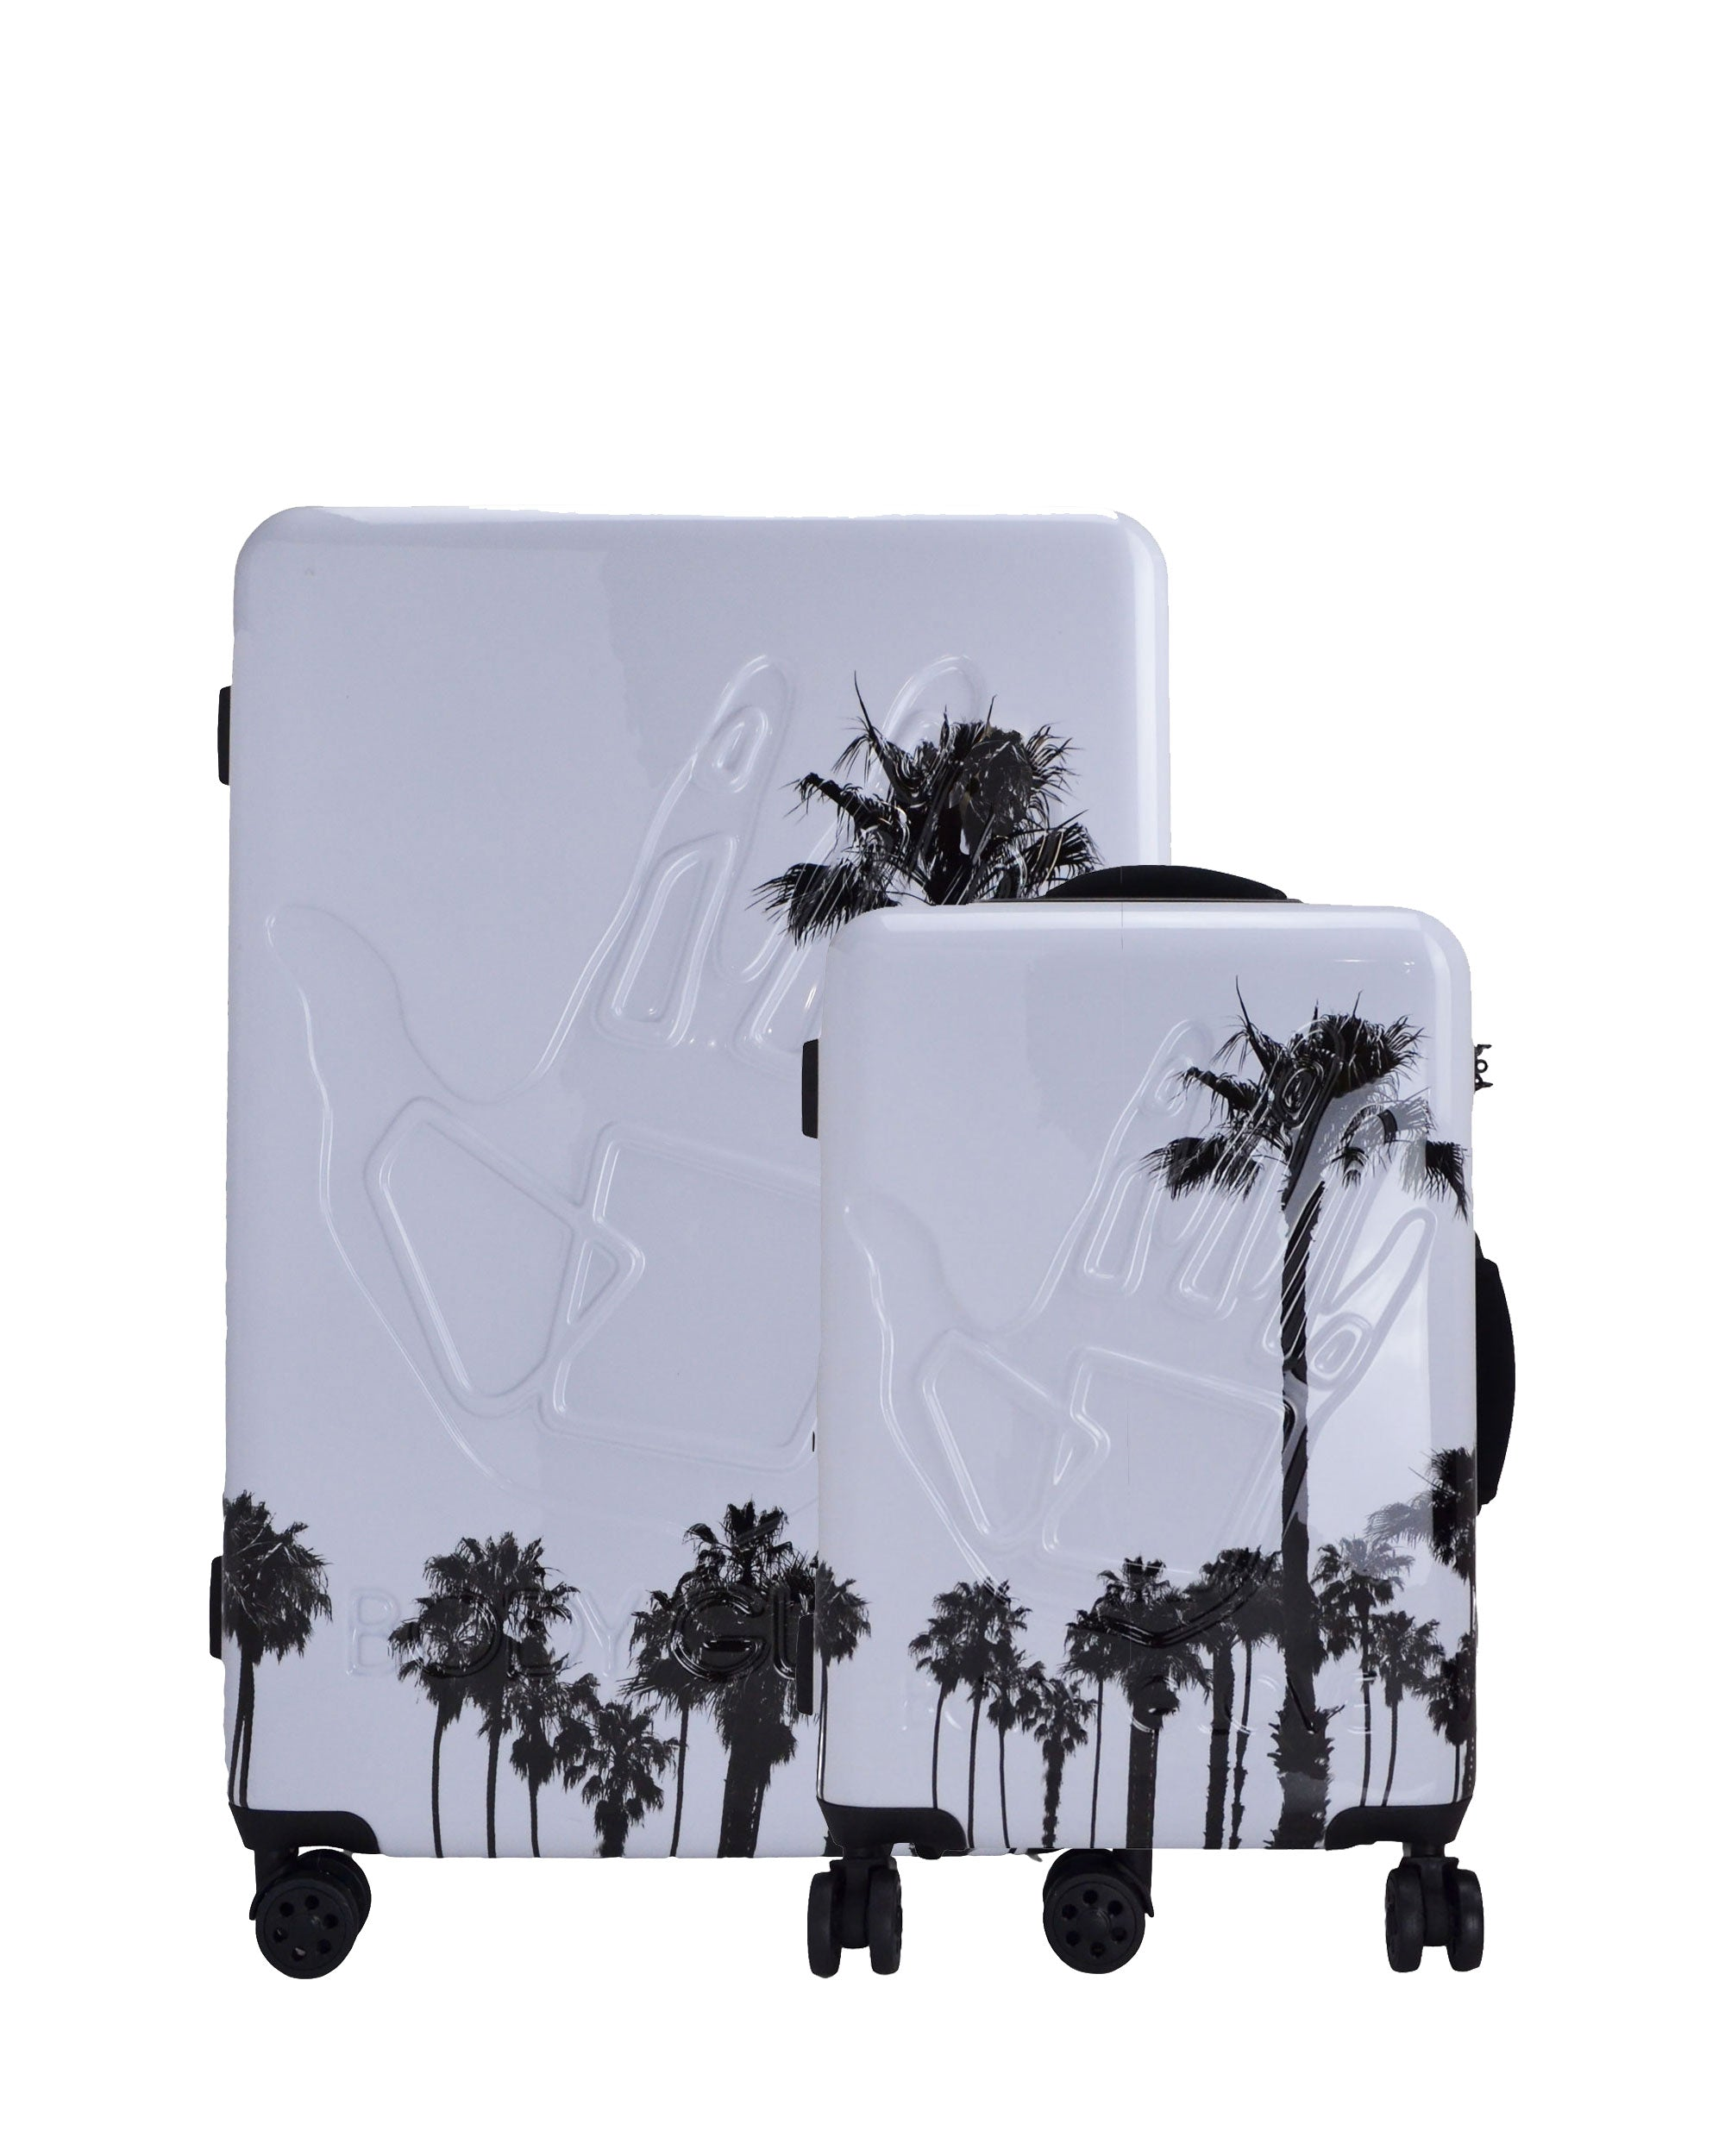 Redondo 2-Piece Hardside Luggage Set - White